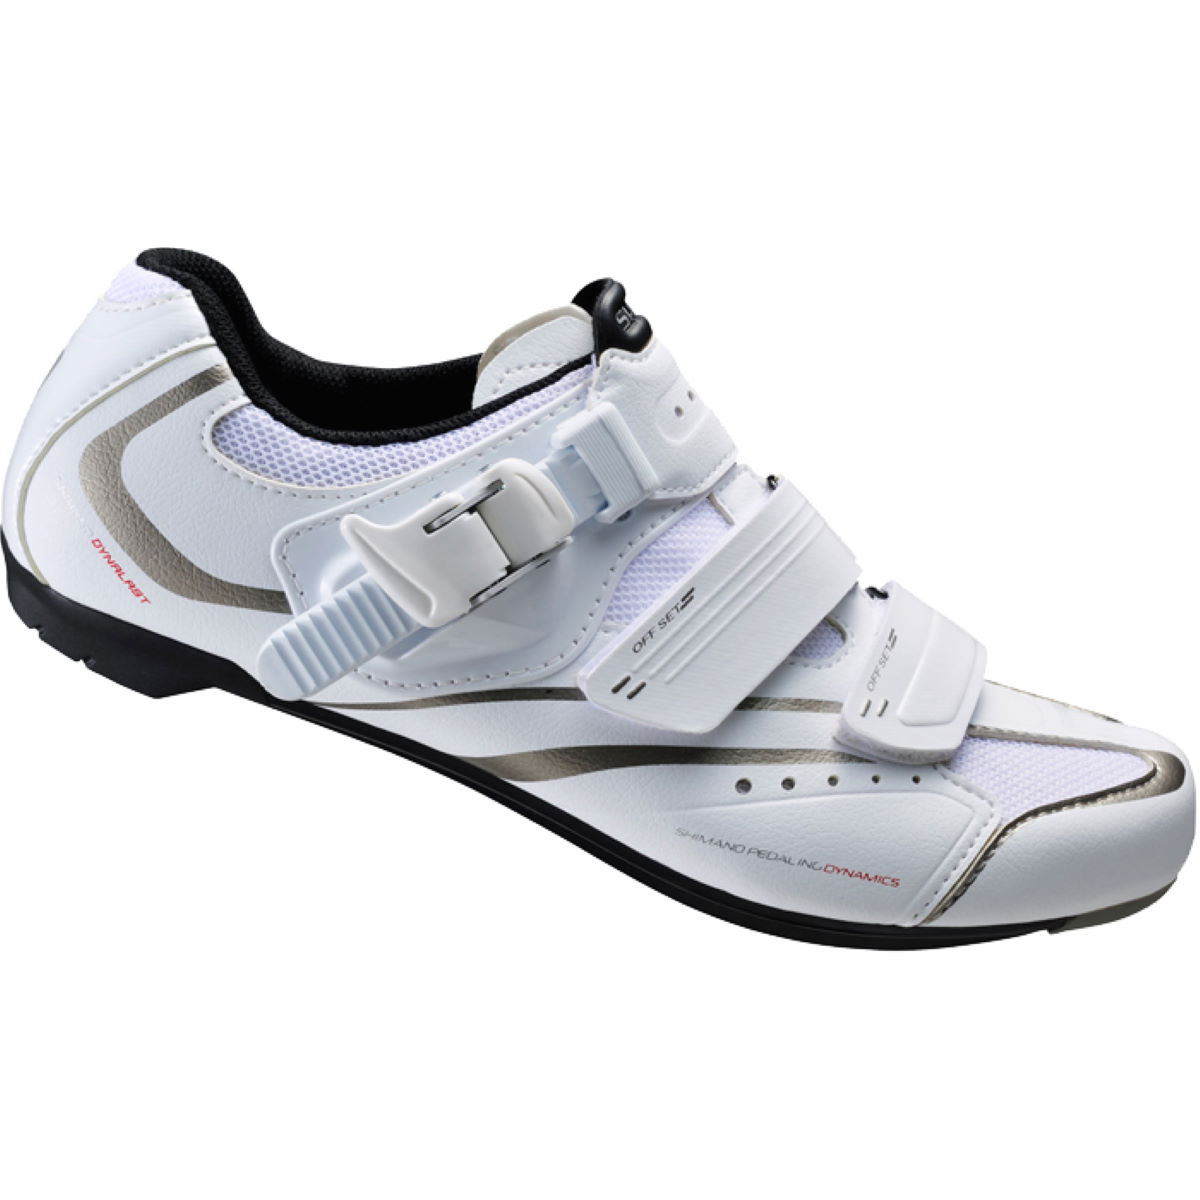 Cycling Shoes Too Wide